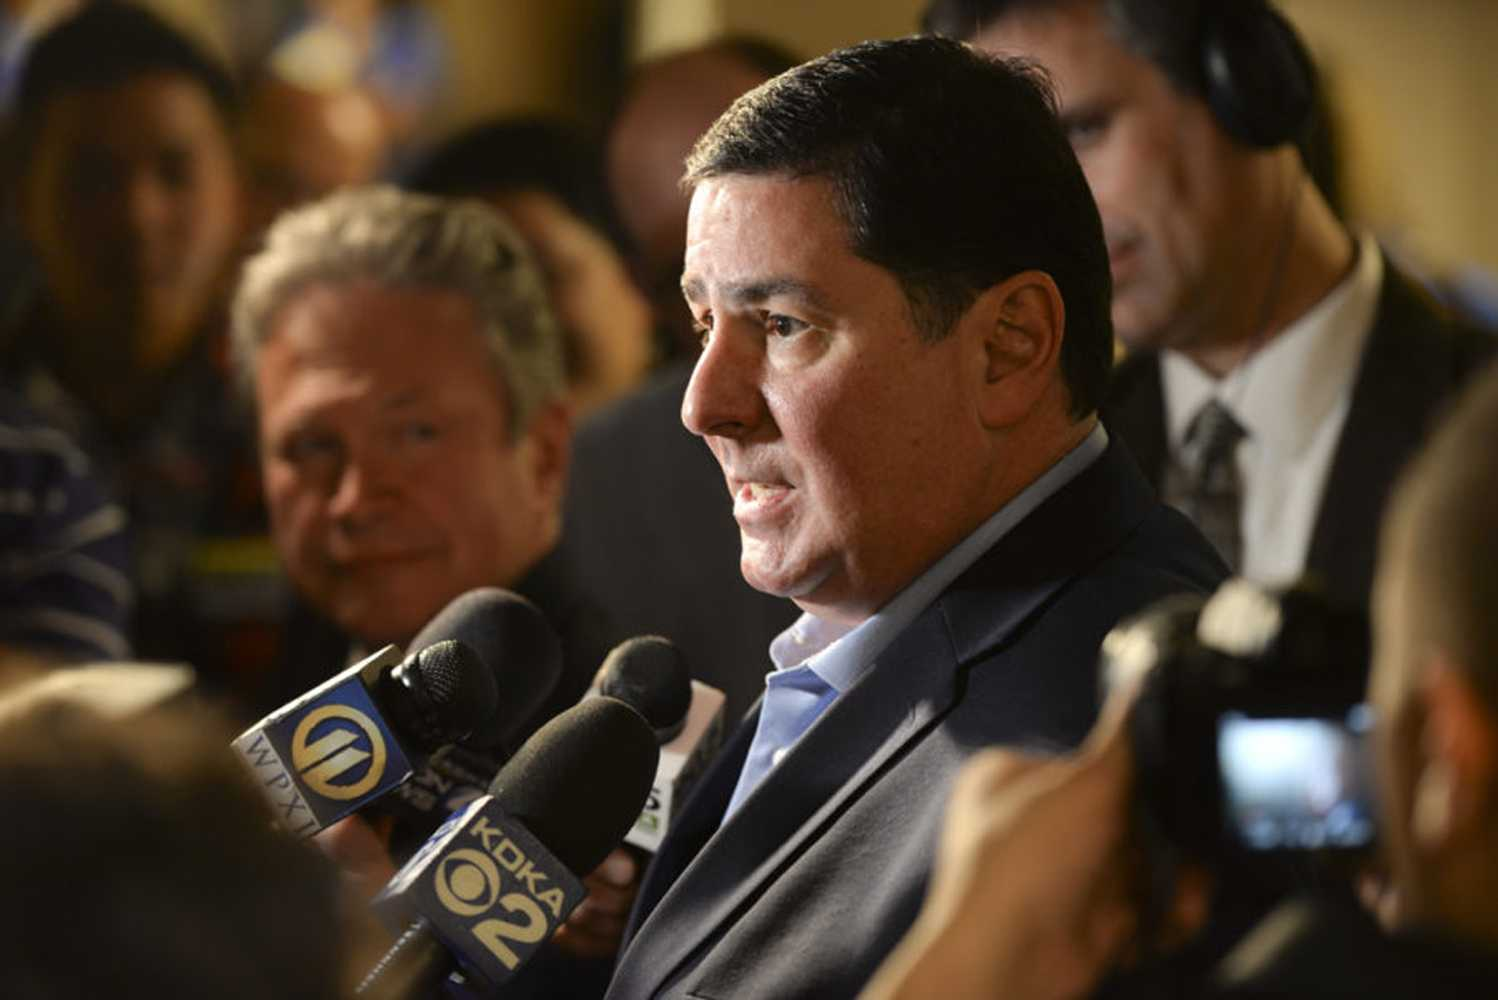 Reporters surround Mayor Bill Peduto after his victory in the Democratic primary this May. (Photo by Anna Bongardino | Assistant Visual Editor)